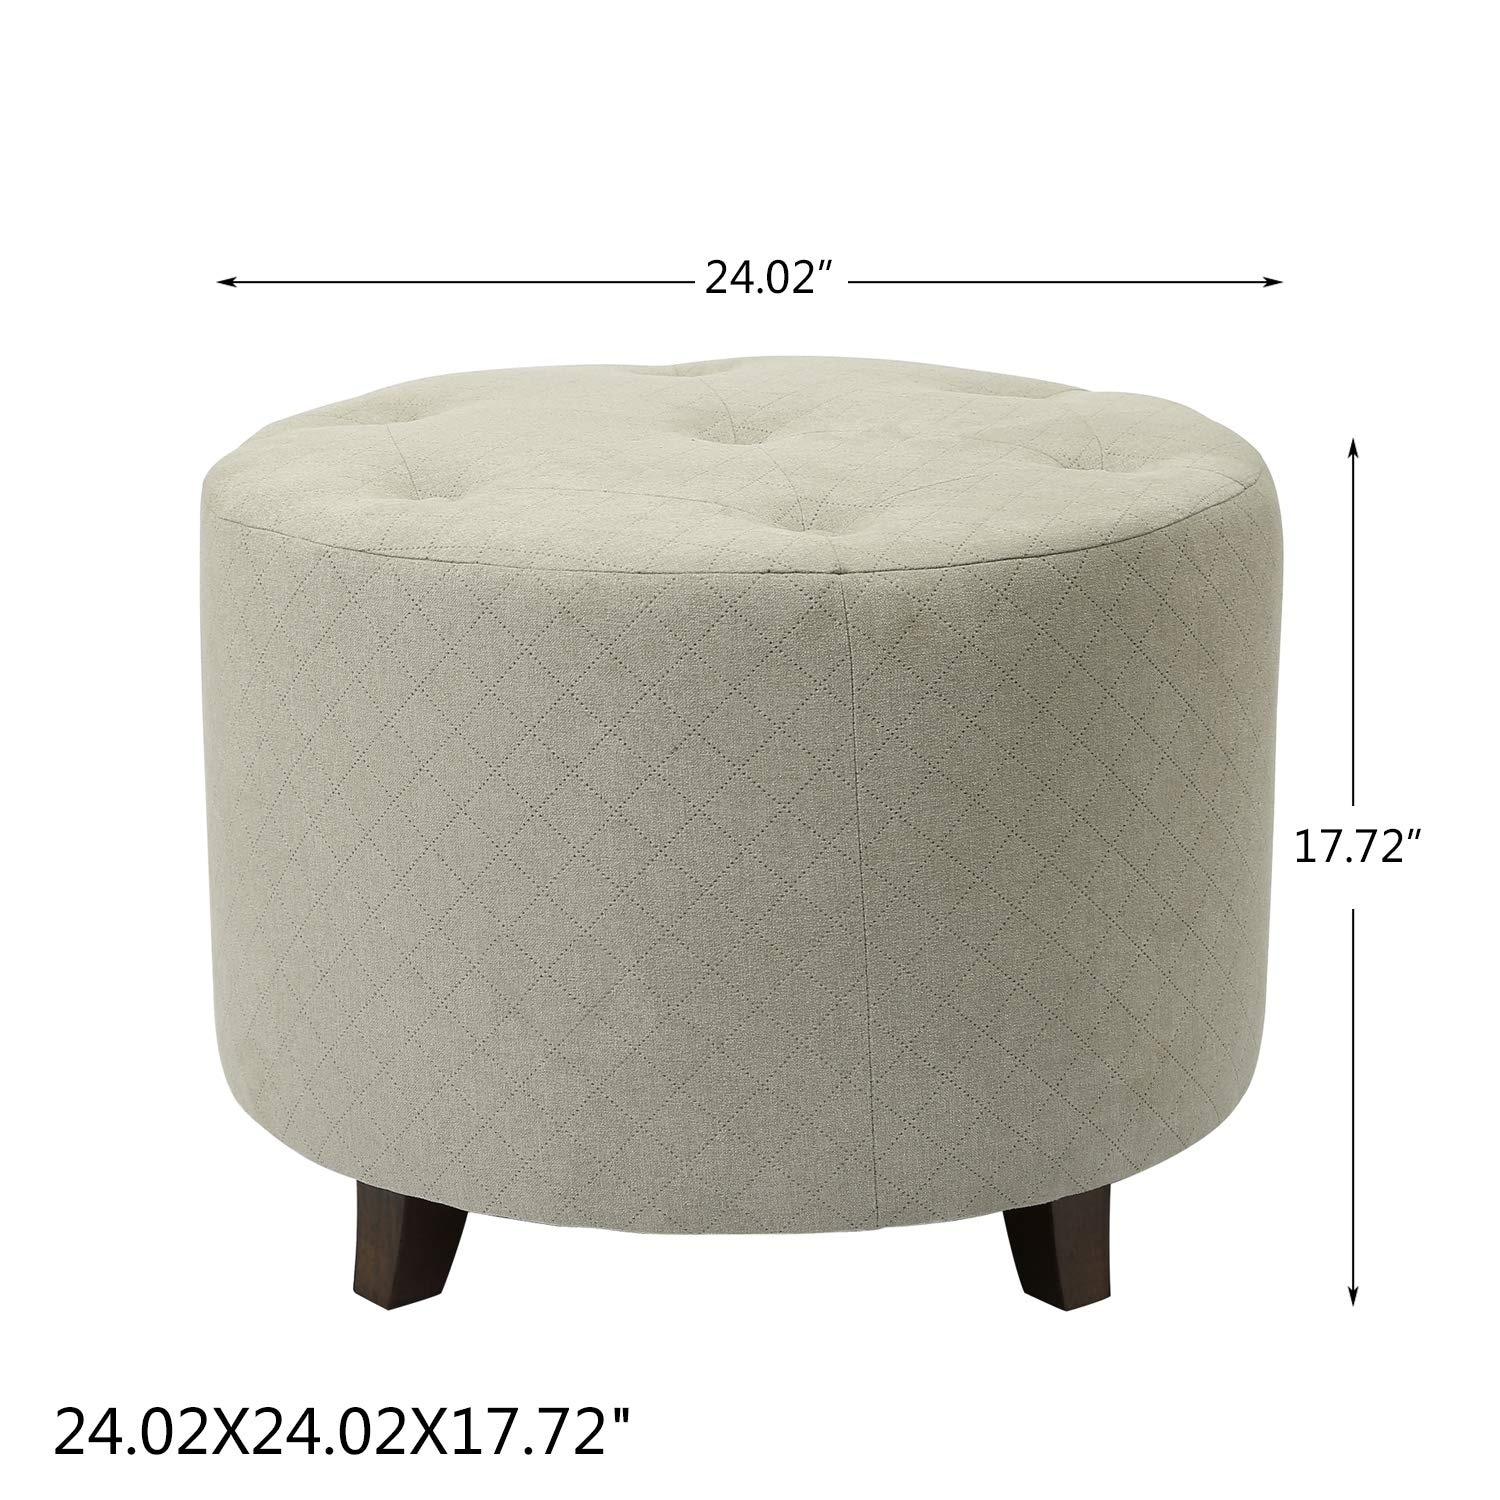 Sensational Adeco Ft0273 1 Round Fabric Foot Rest And Seat Height 17 Inch Ottomans Storage Ottomans Cream White Short Links Chair Design For Home Short Linksinfo